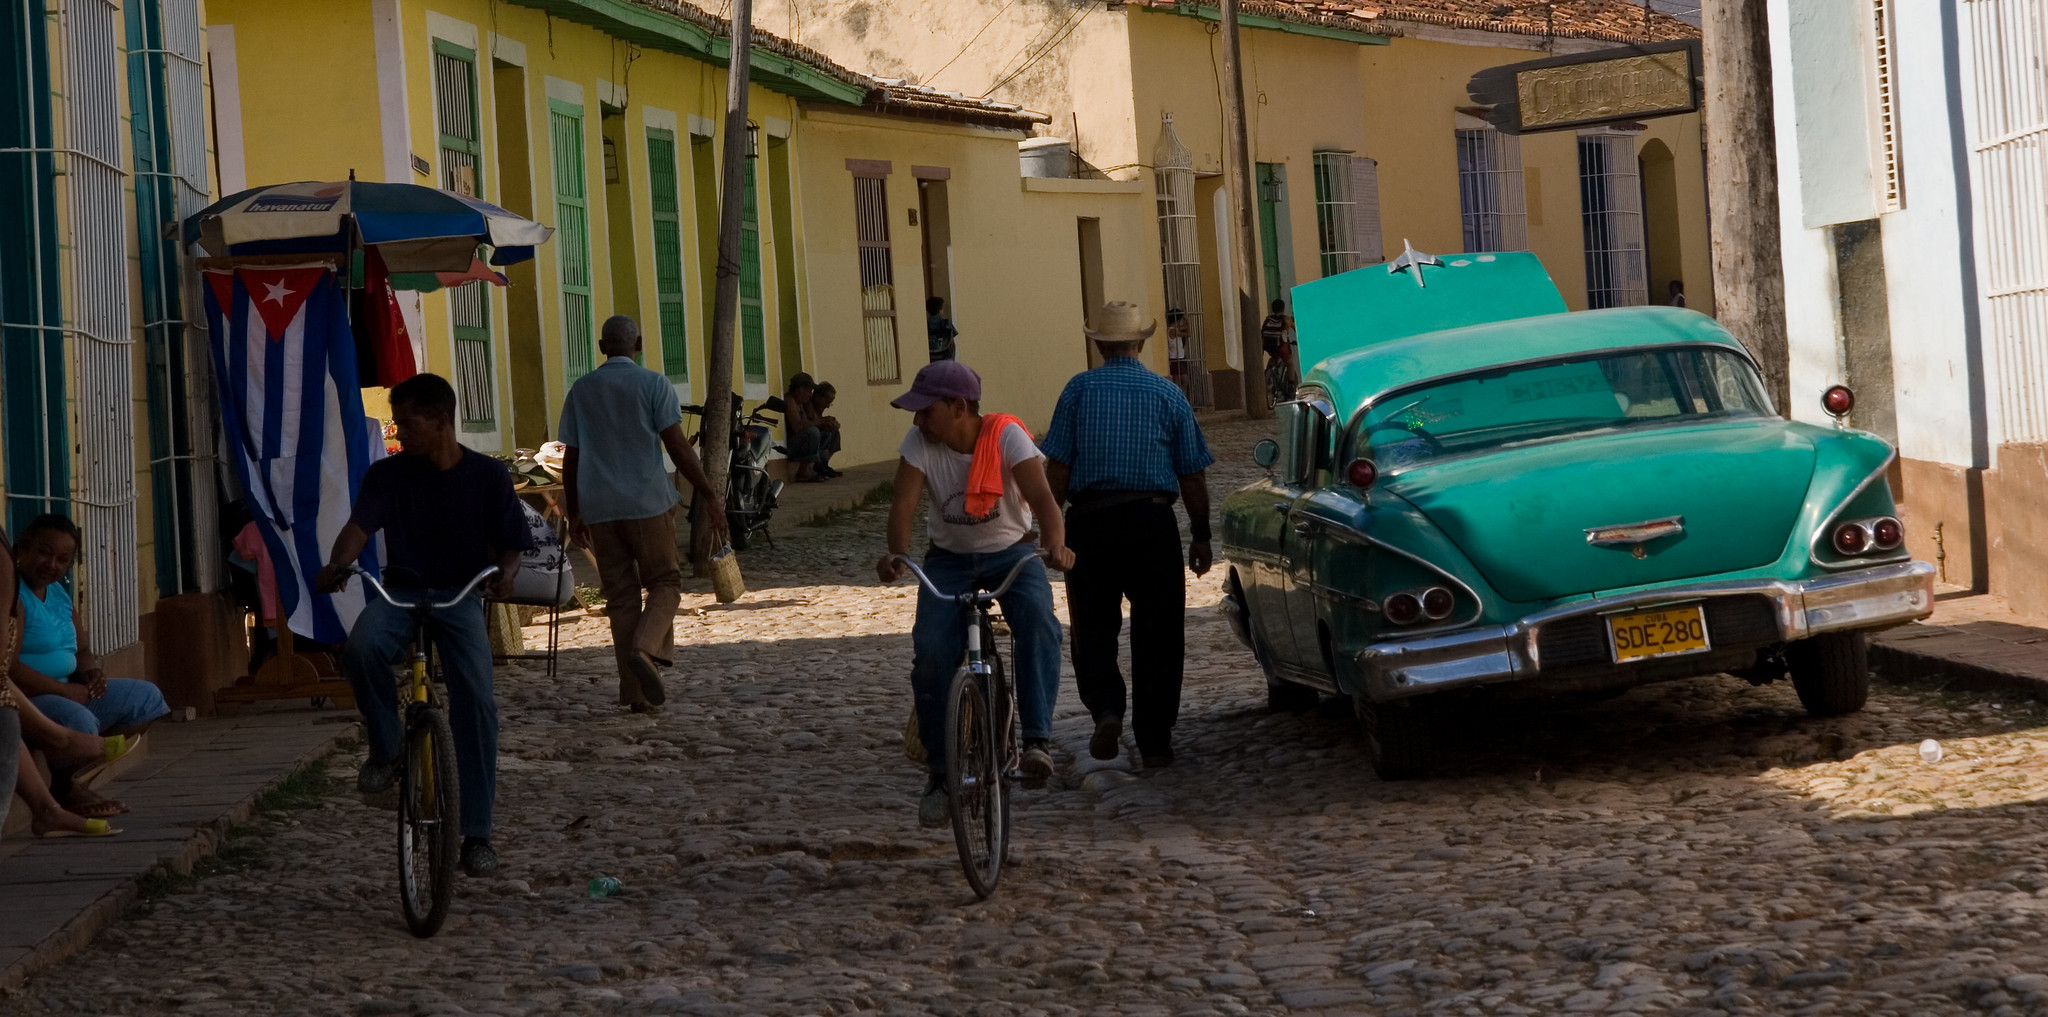 Photo of a car in Cuba in a street scene